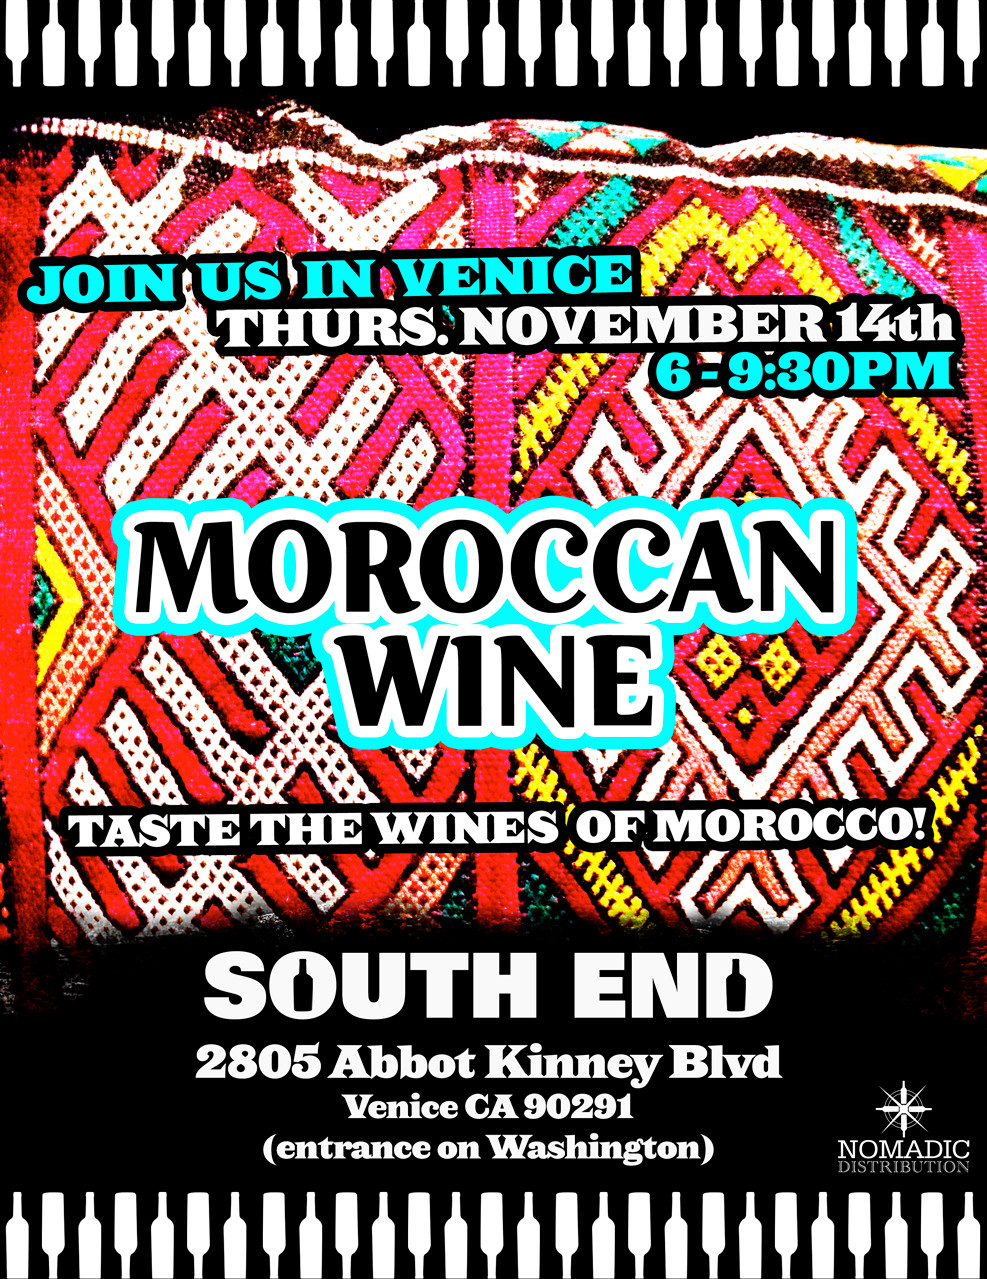 South End Moroccan wine tasting Nov14